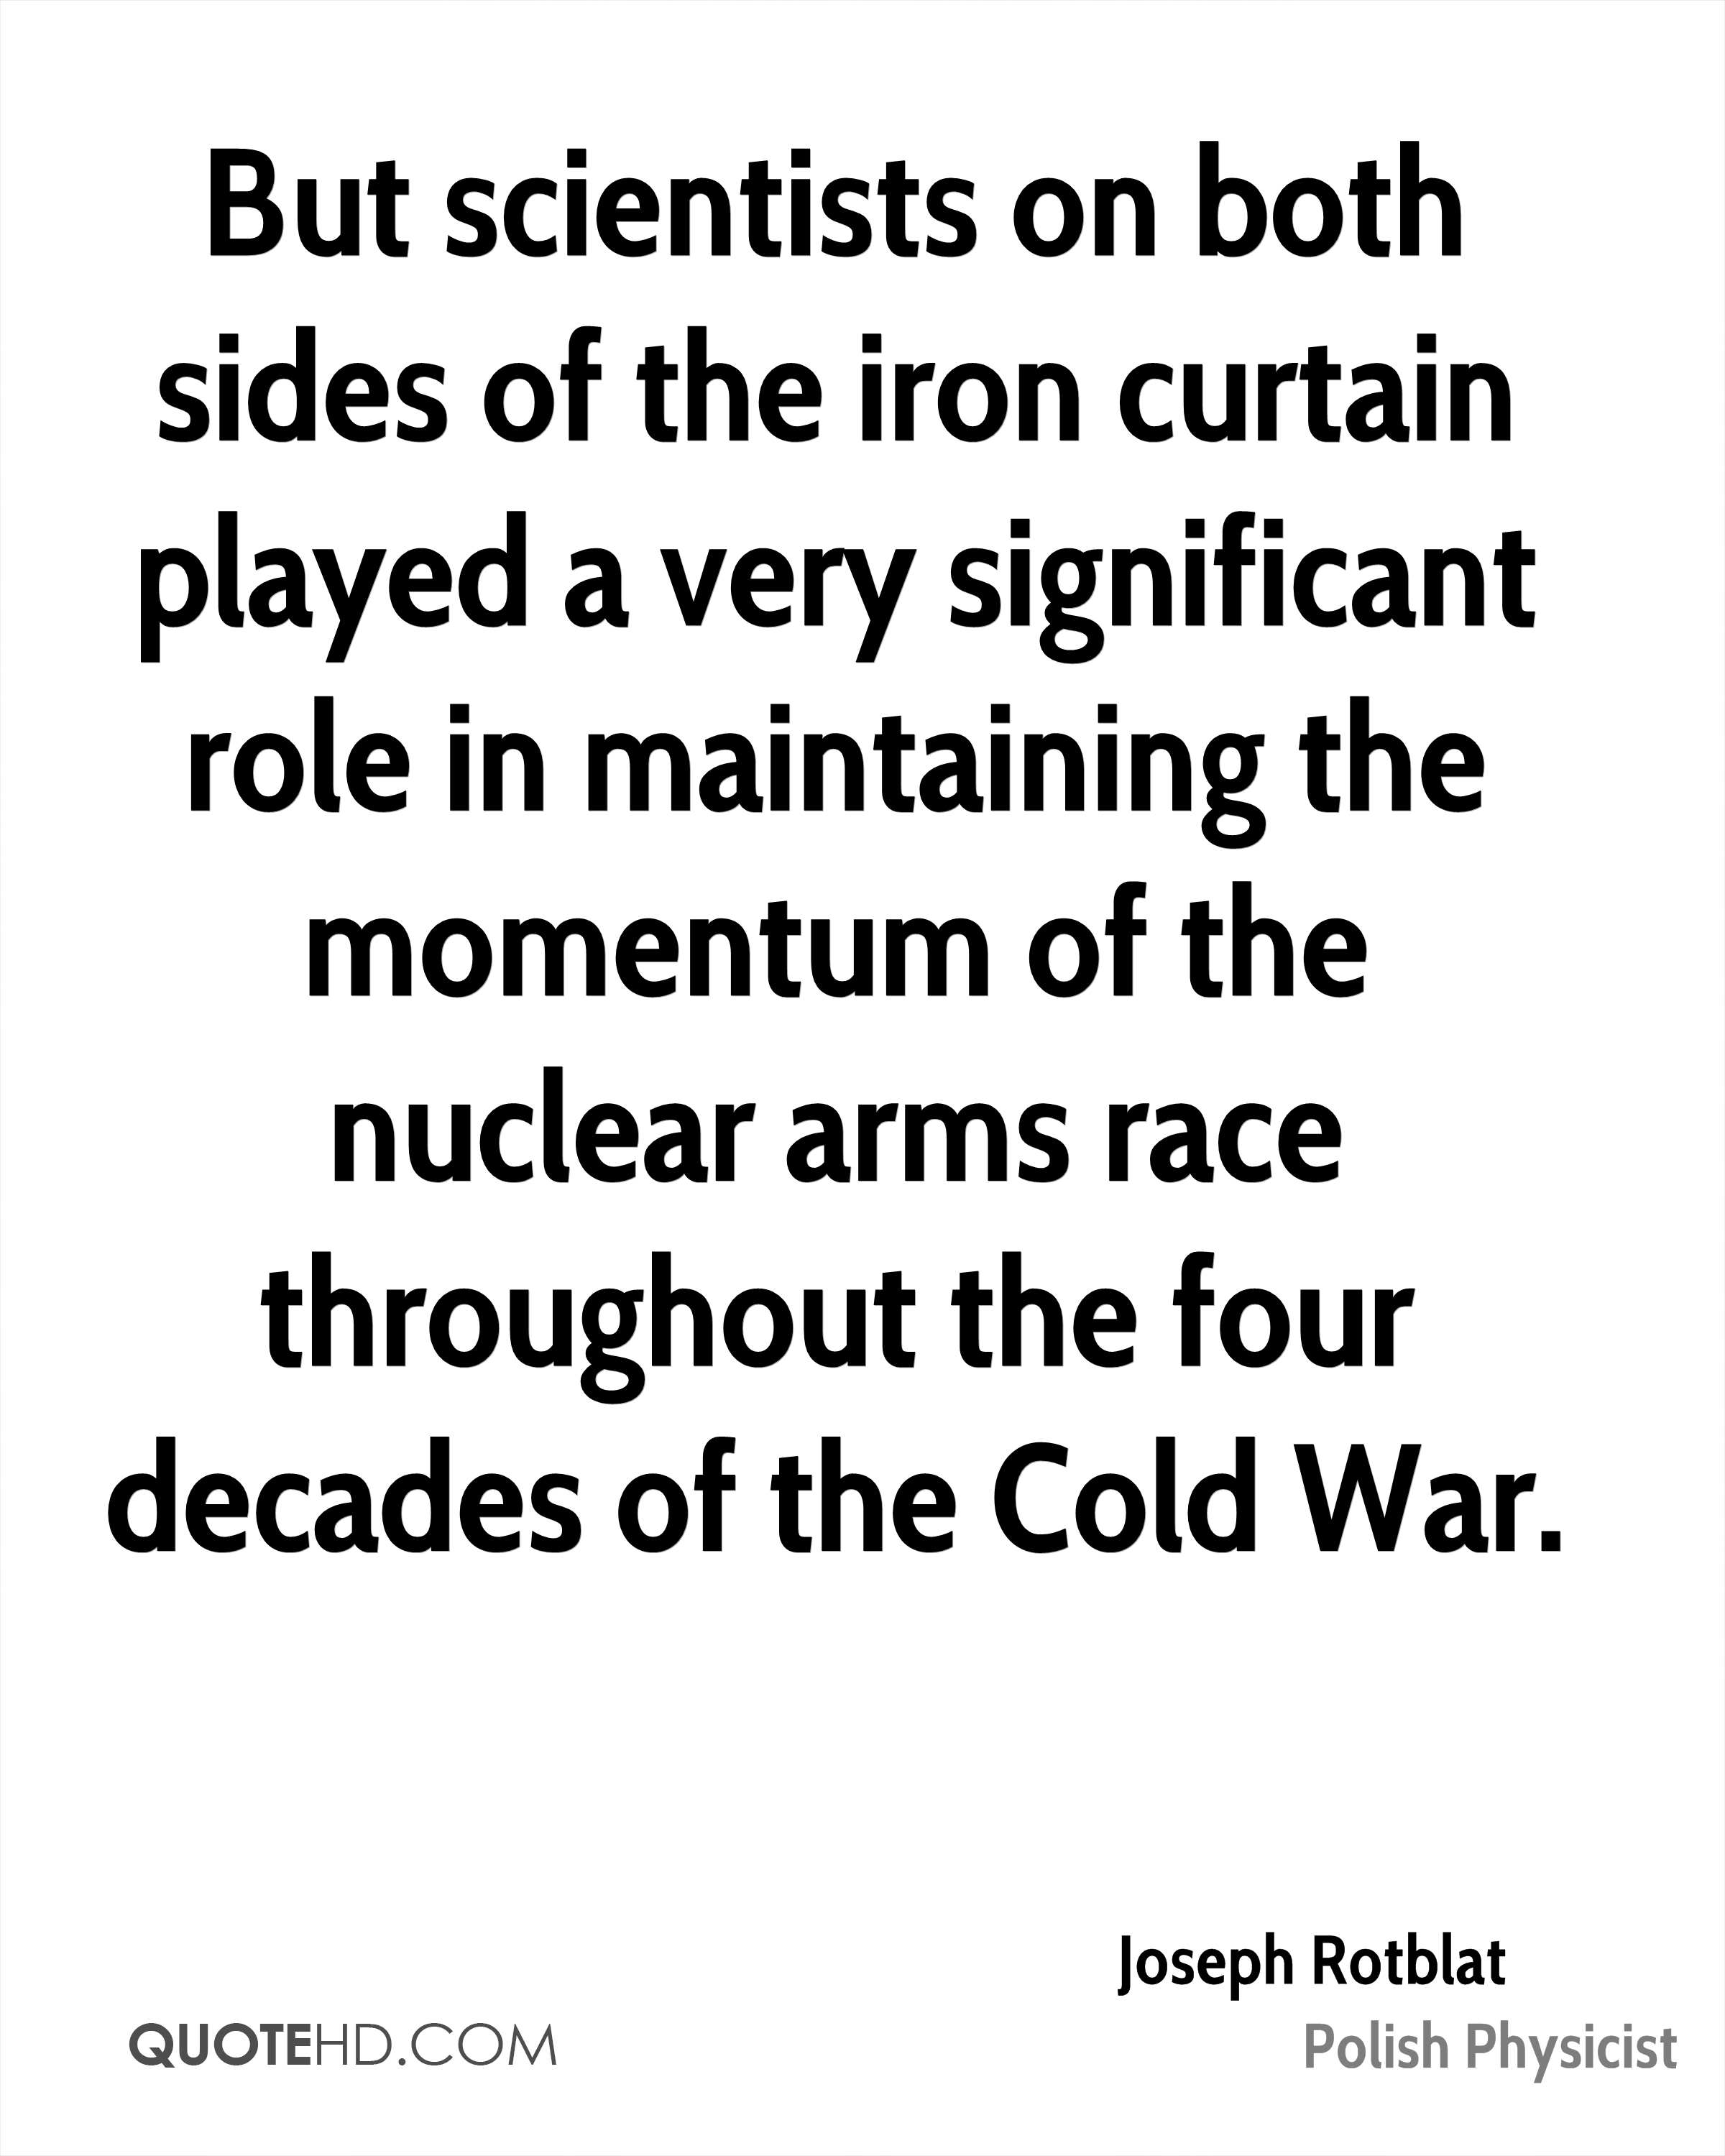 But scientists on both sides of the iron curtain played a very significant role in maintaining the momentum of the nuclear arms race throughout the four decades of the Cold War.